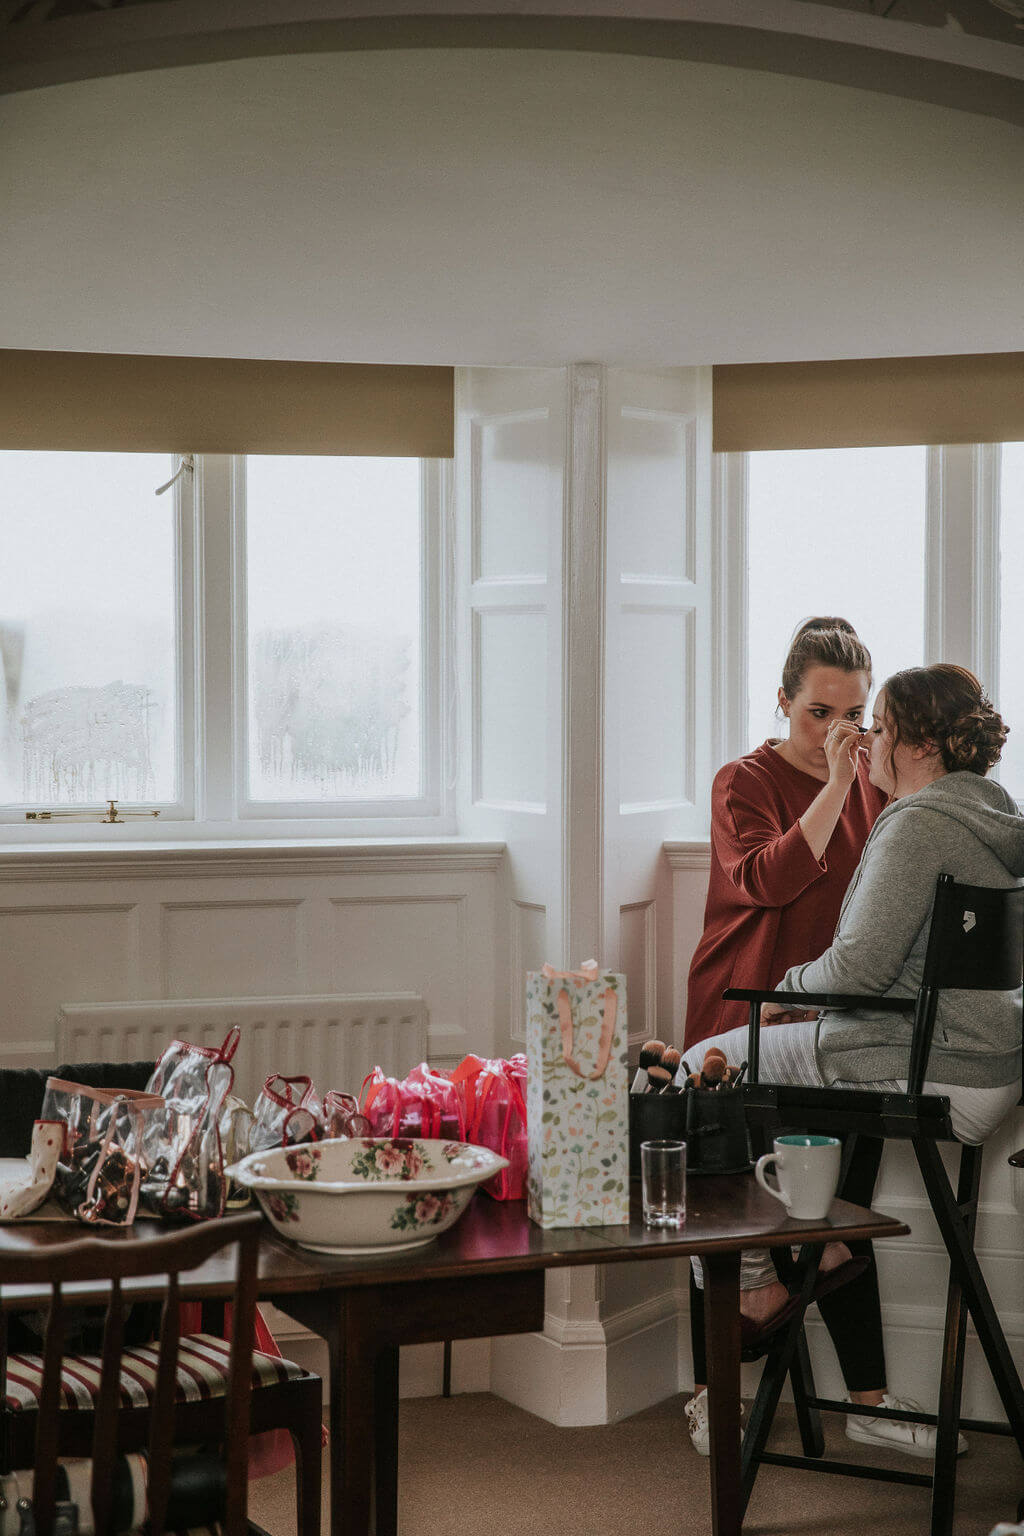 Bridal prep on the wedding morning